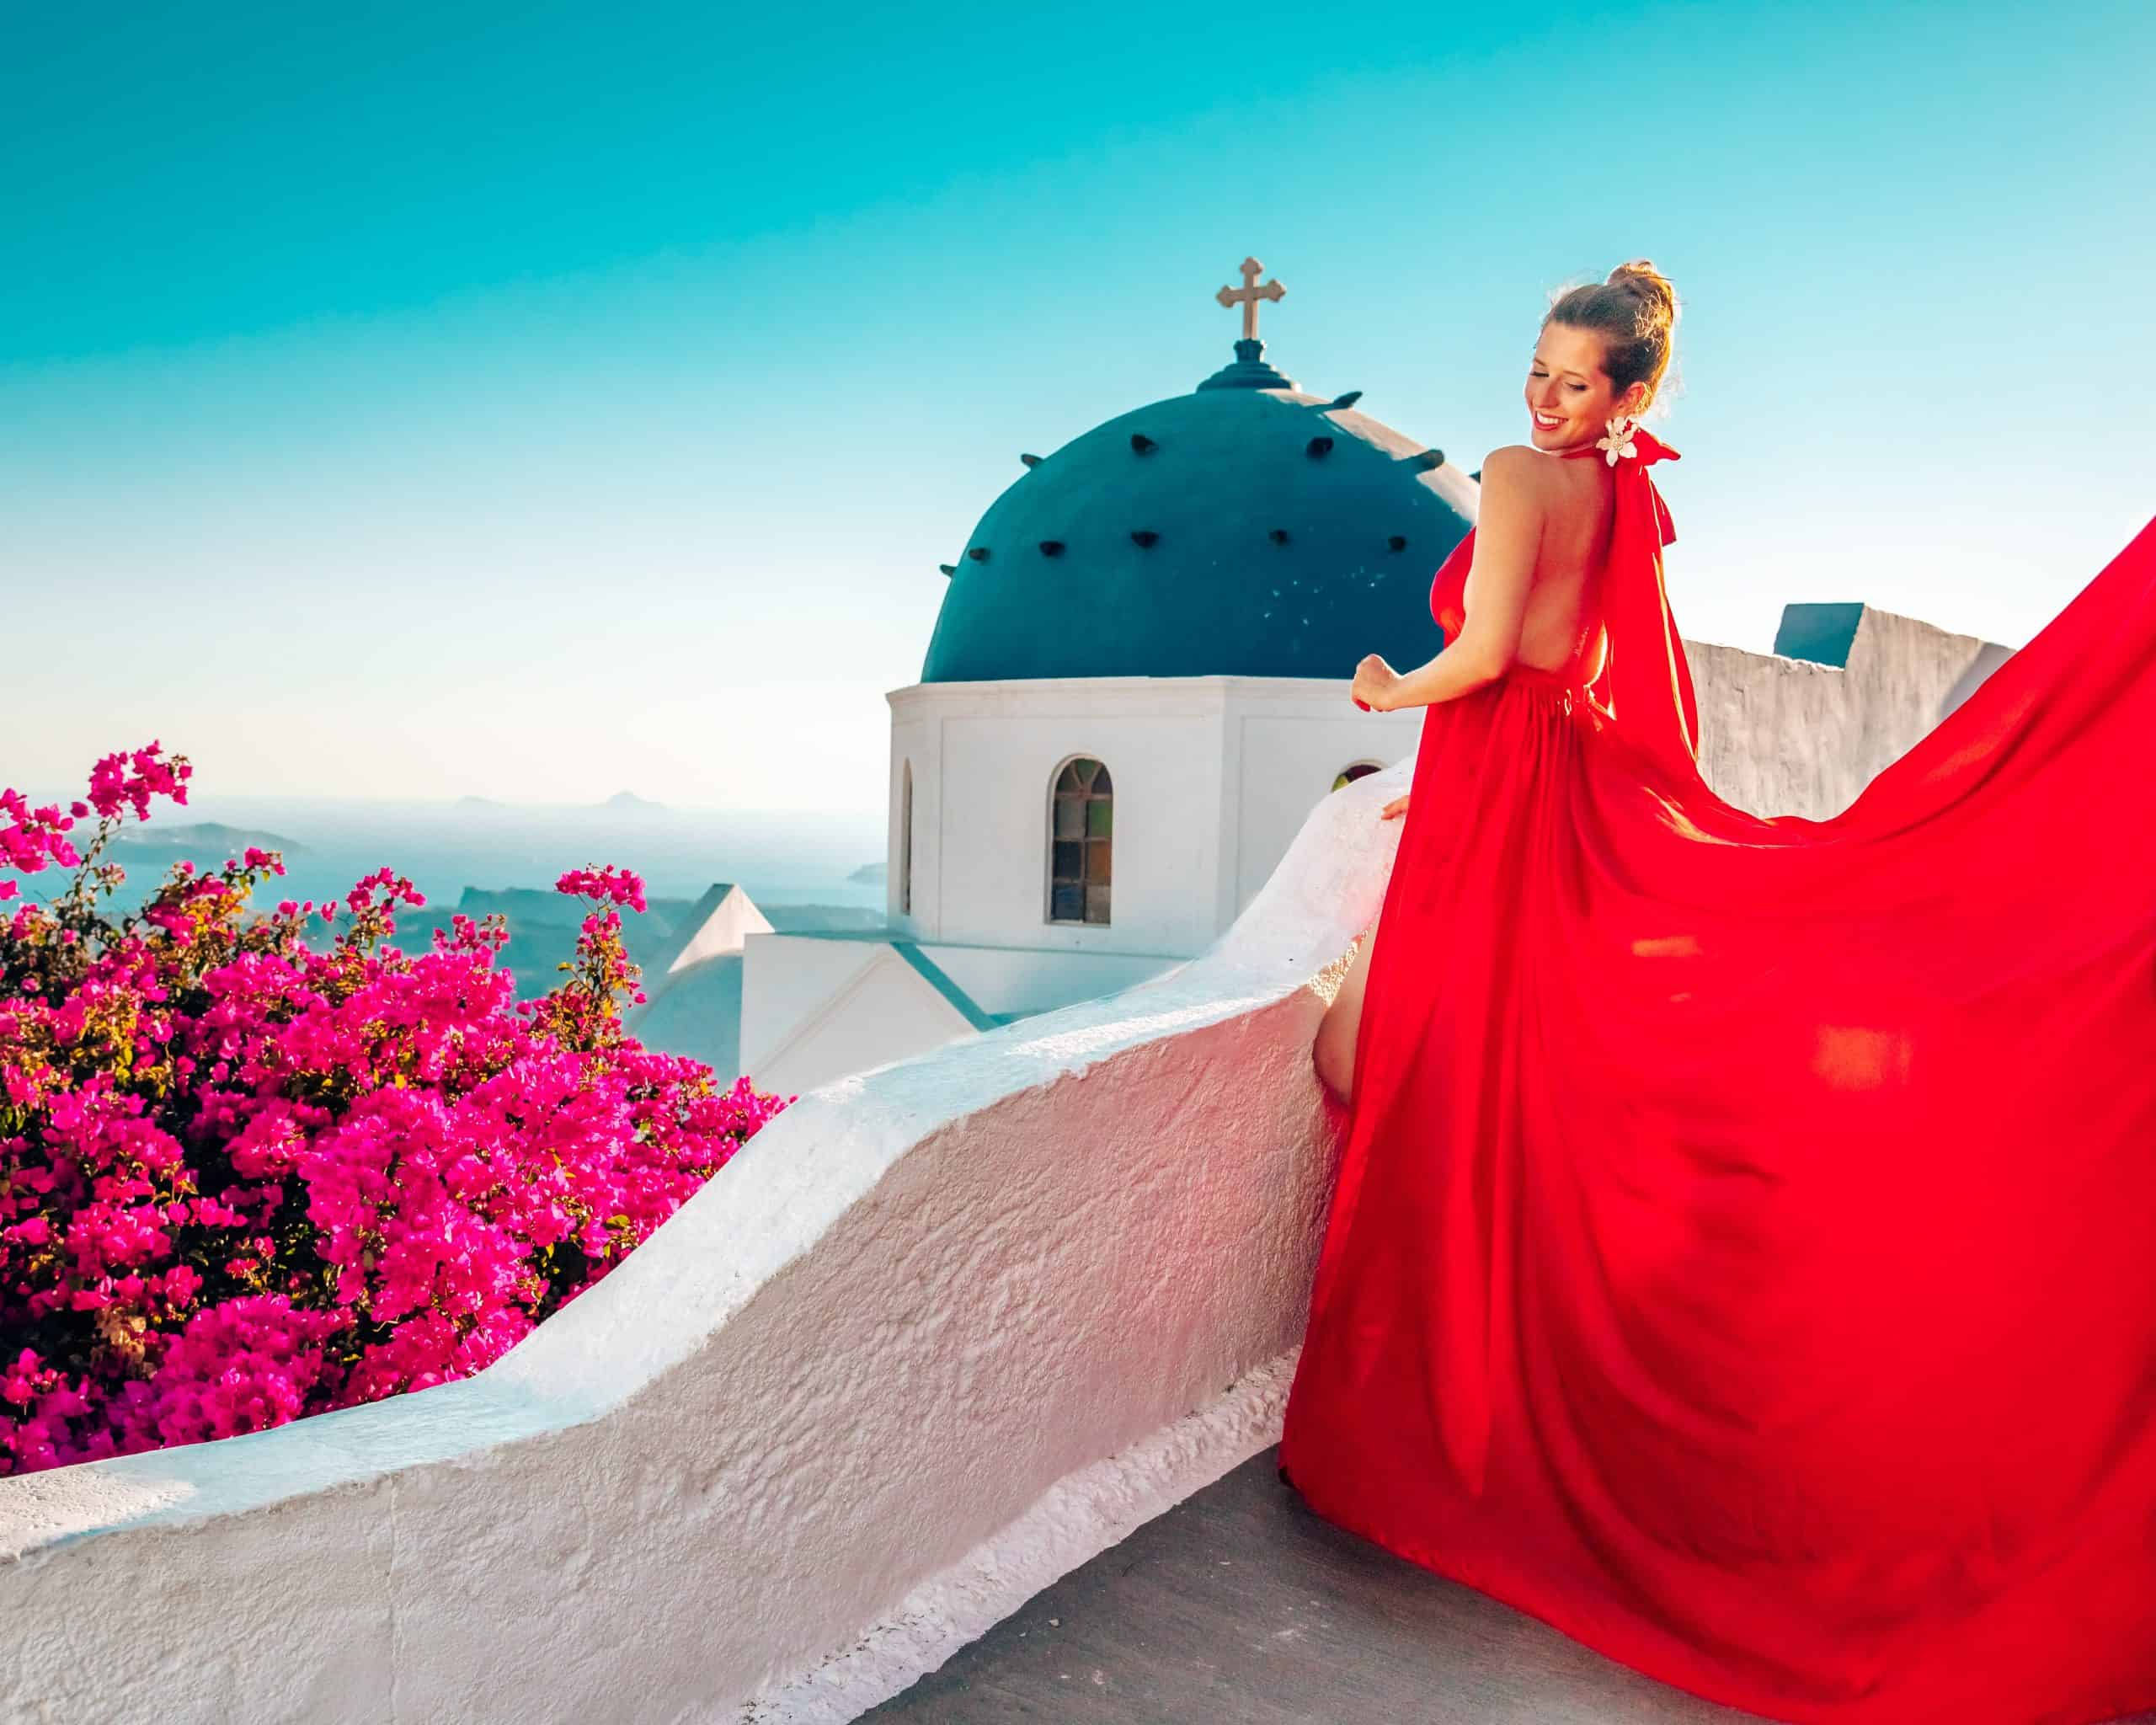 15 Most Instagrammable Places in Santorini